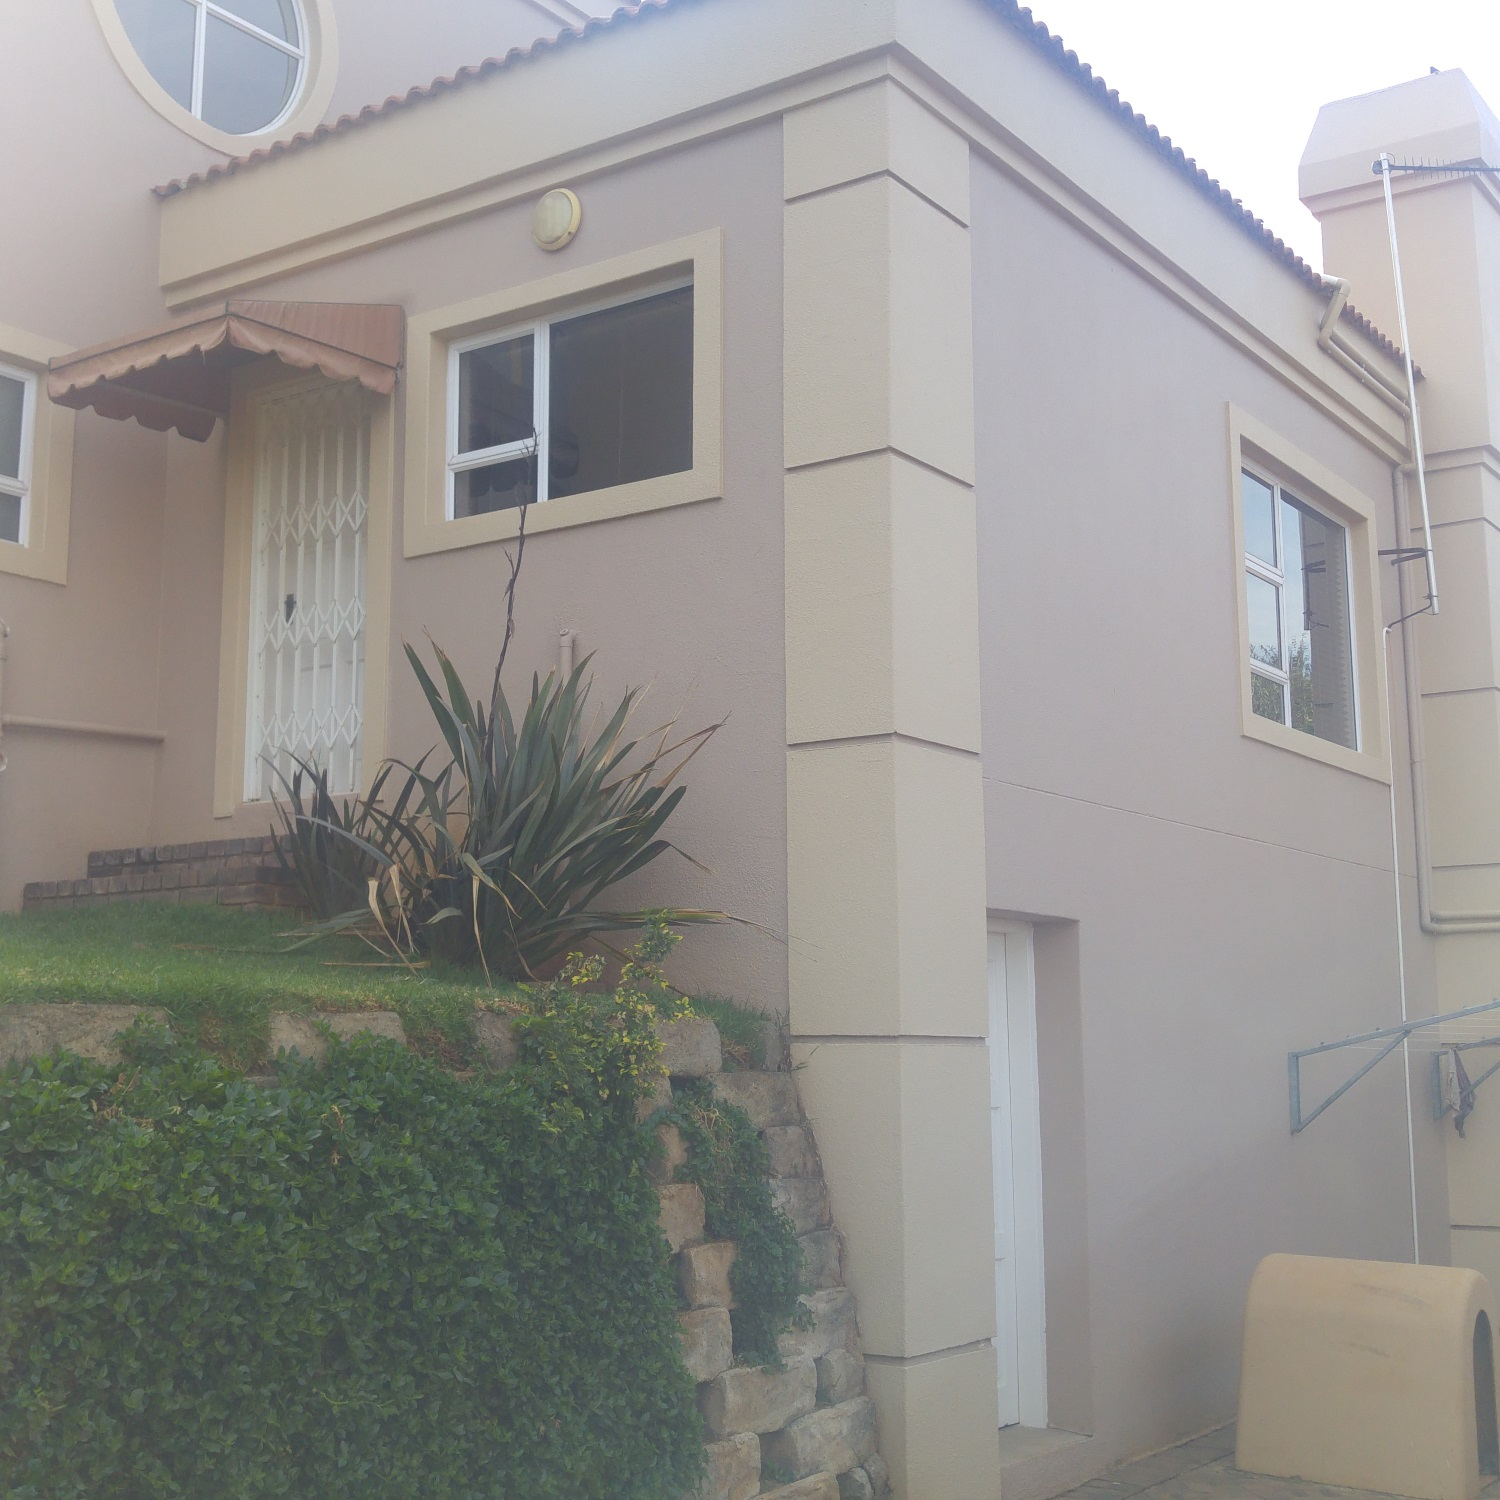 4 Bedroom Townhouse for sale in Glenvista Ext 6 ENT0001967 : photo#31